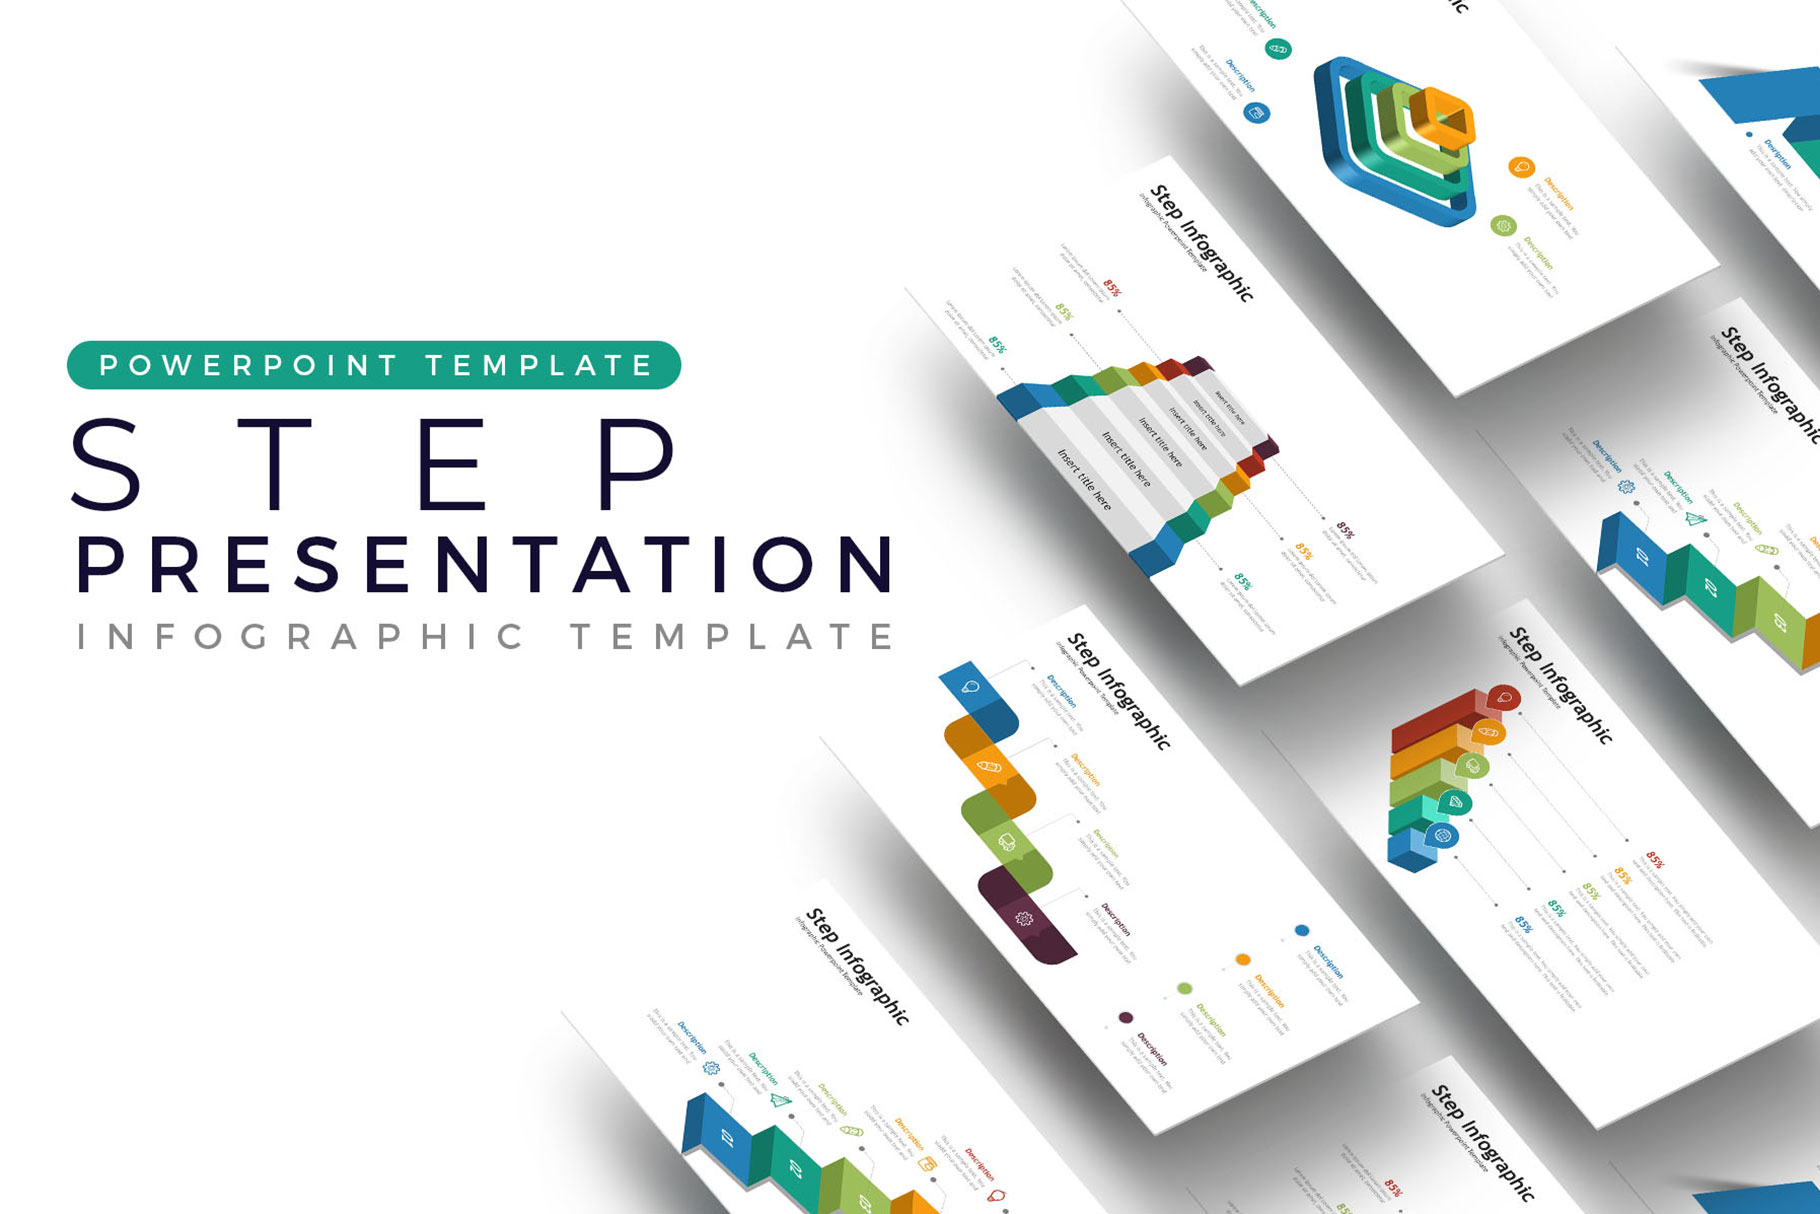 Step Presentation - Infographic Template example image 1